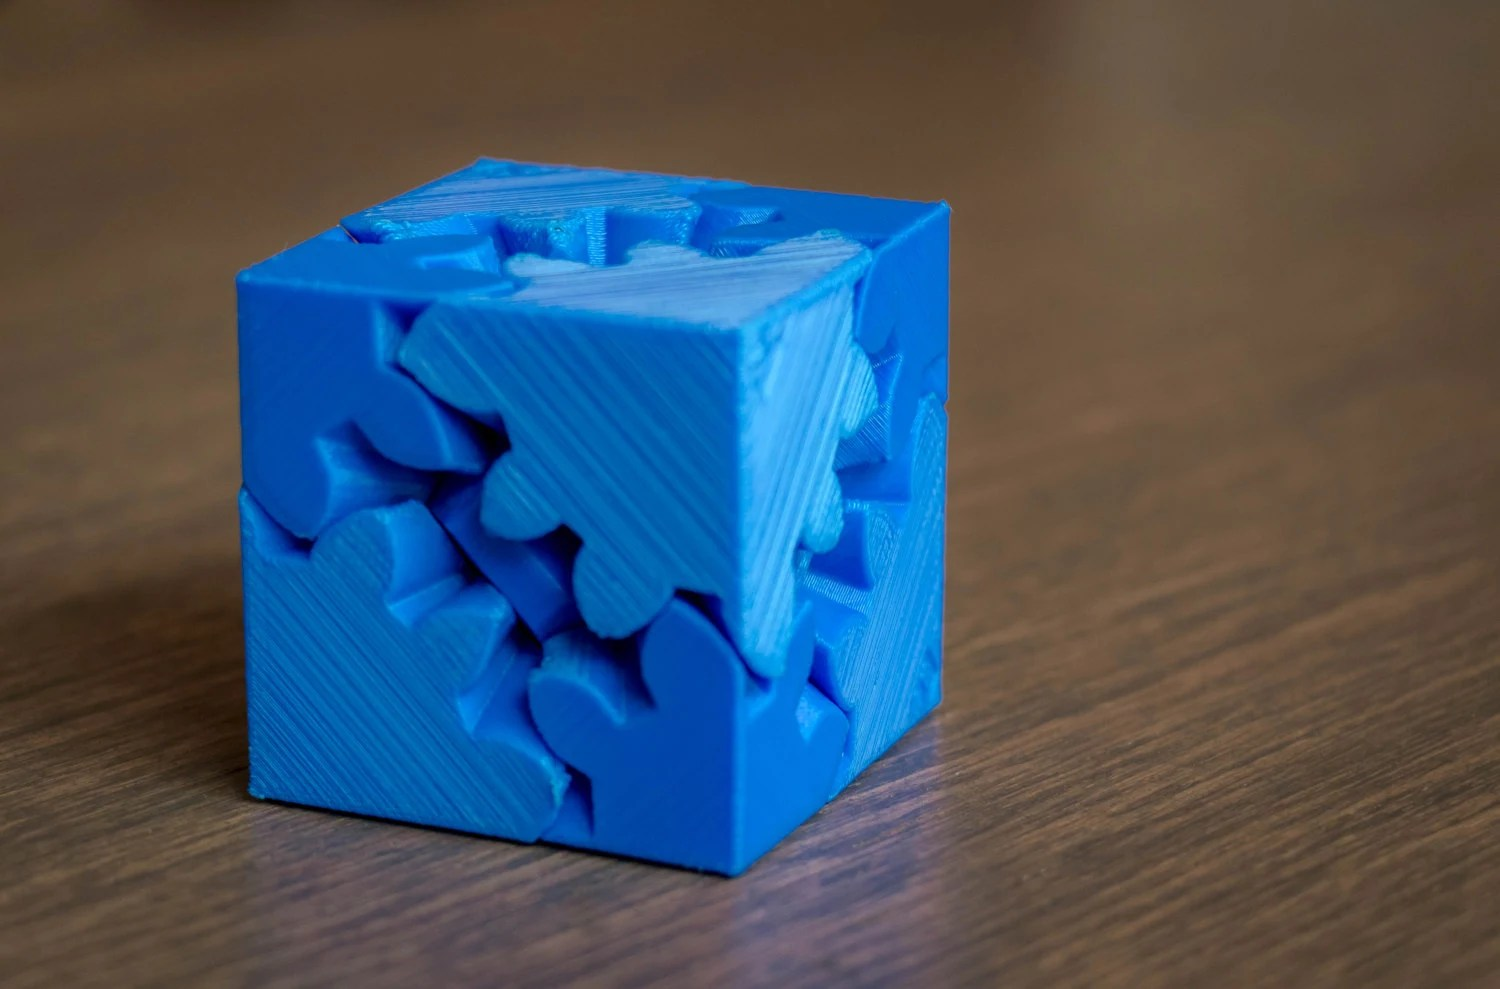 3d printed cube gears